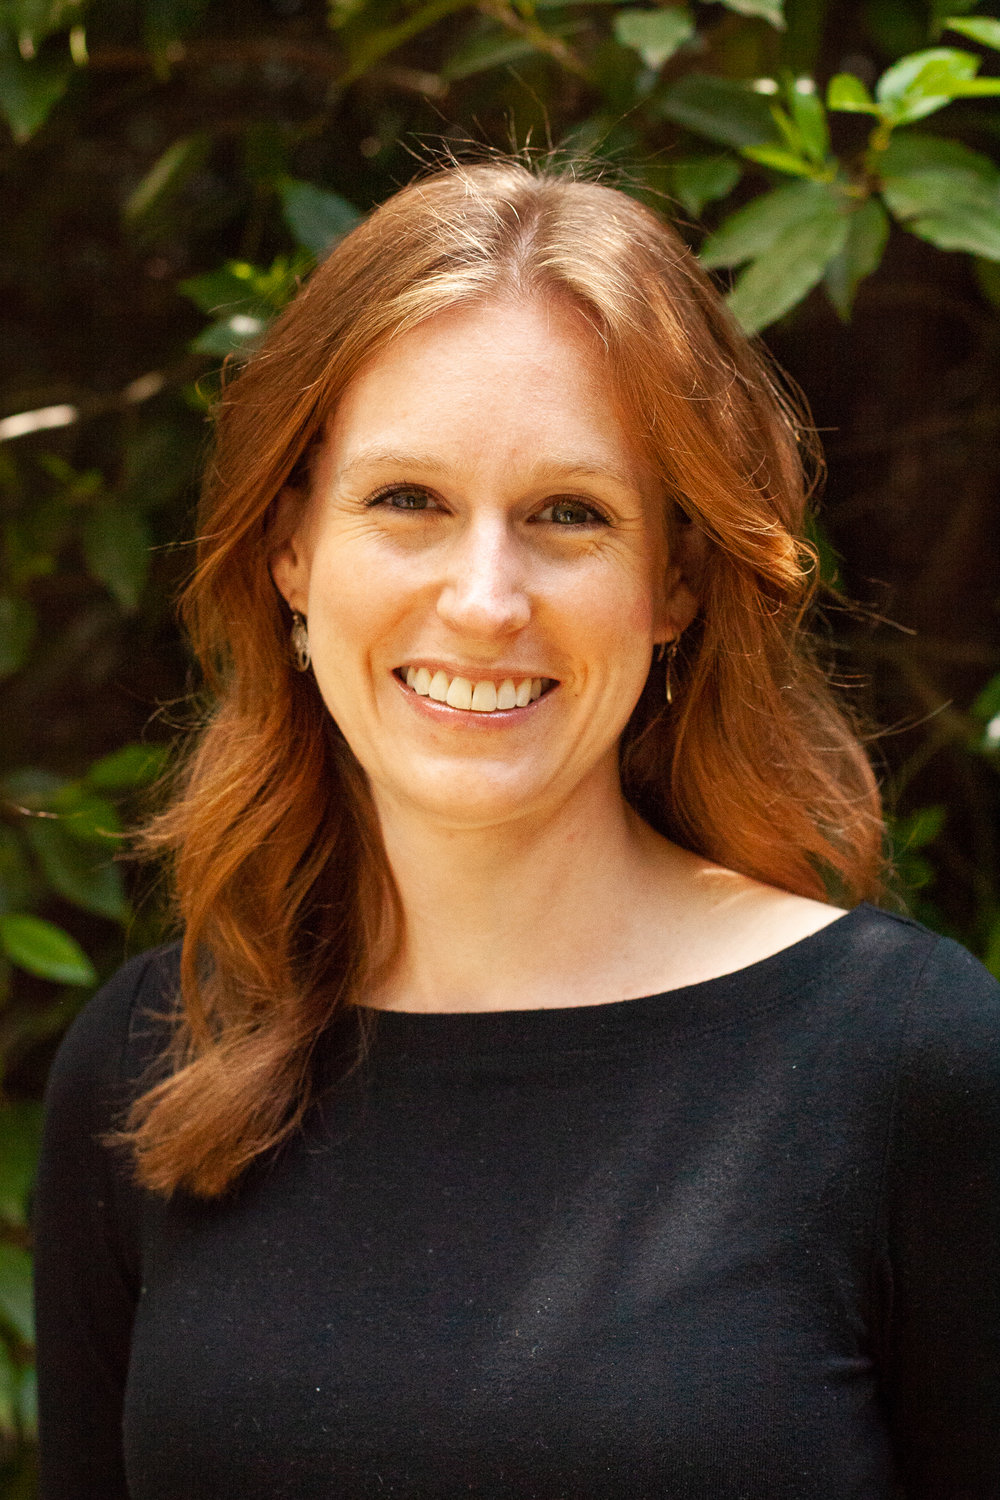 KAtherine Ferrell, MA, LMHC, therapist   ∙ Adults (Ages 18+) ∙ Behavioral Medicine & Holistic Health ∙ Mindfulness & Meditation ∙Stress Reduction ∙Depression ∙Anxiety ∙ Self-Esteem ∙ Recovery From Drug & Alcohol Addiction ∙Life Transitions ∙ LGBTQIA ∙ Kink/ Poly-Friendly